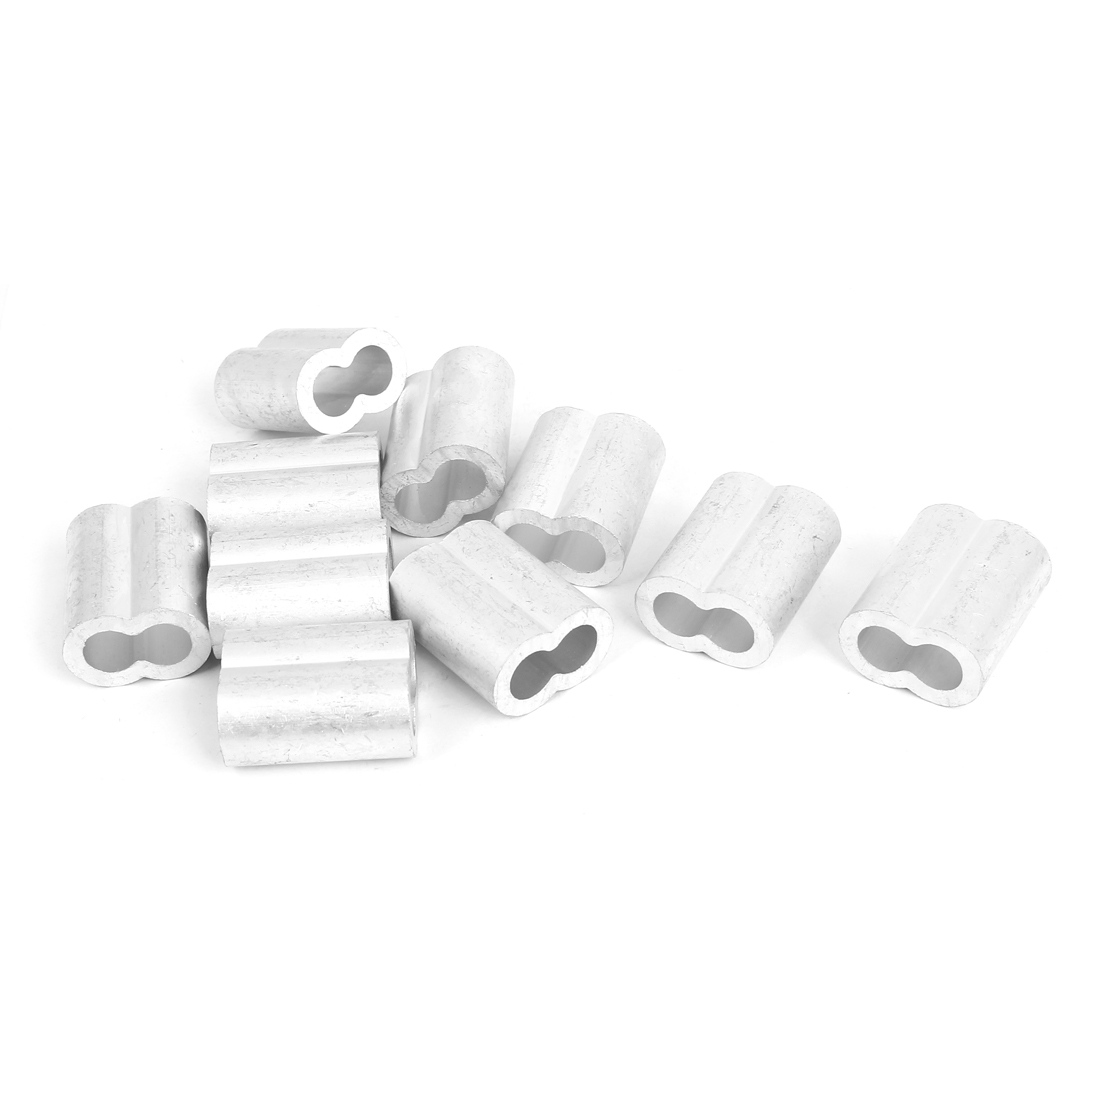 "10mm 3/8"" Wire Rope Aluminum Sleeves Clip Fittings Cable Crimps 10 Pcs"